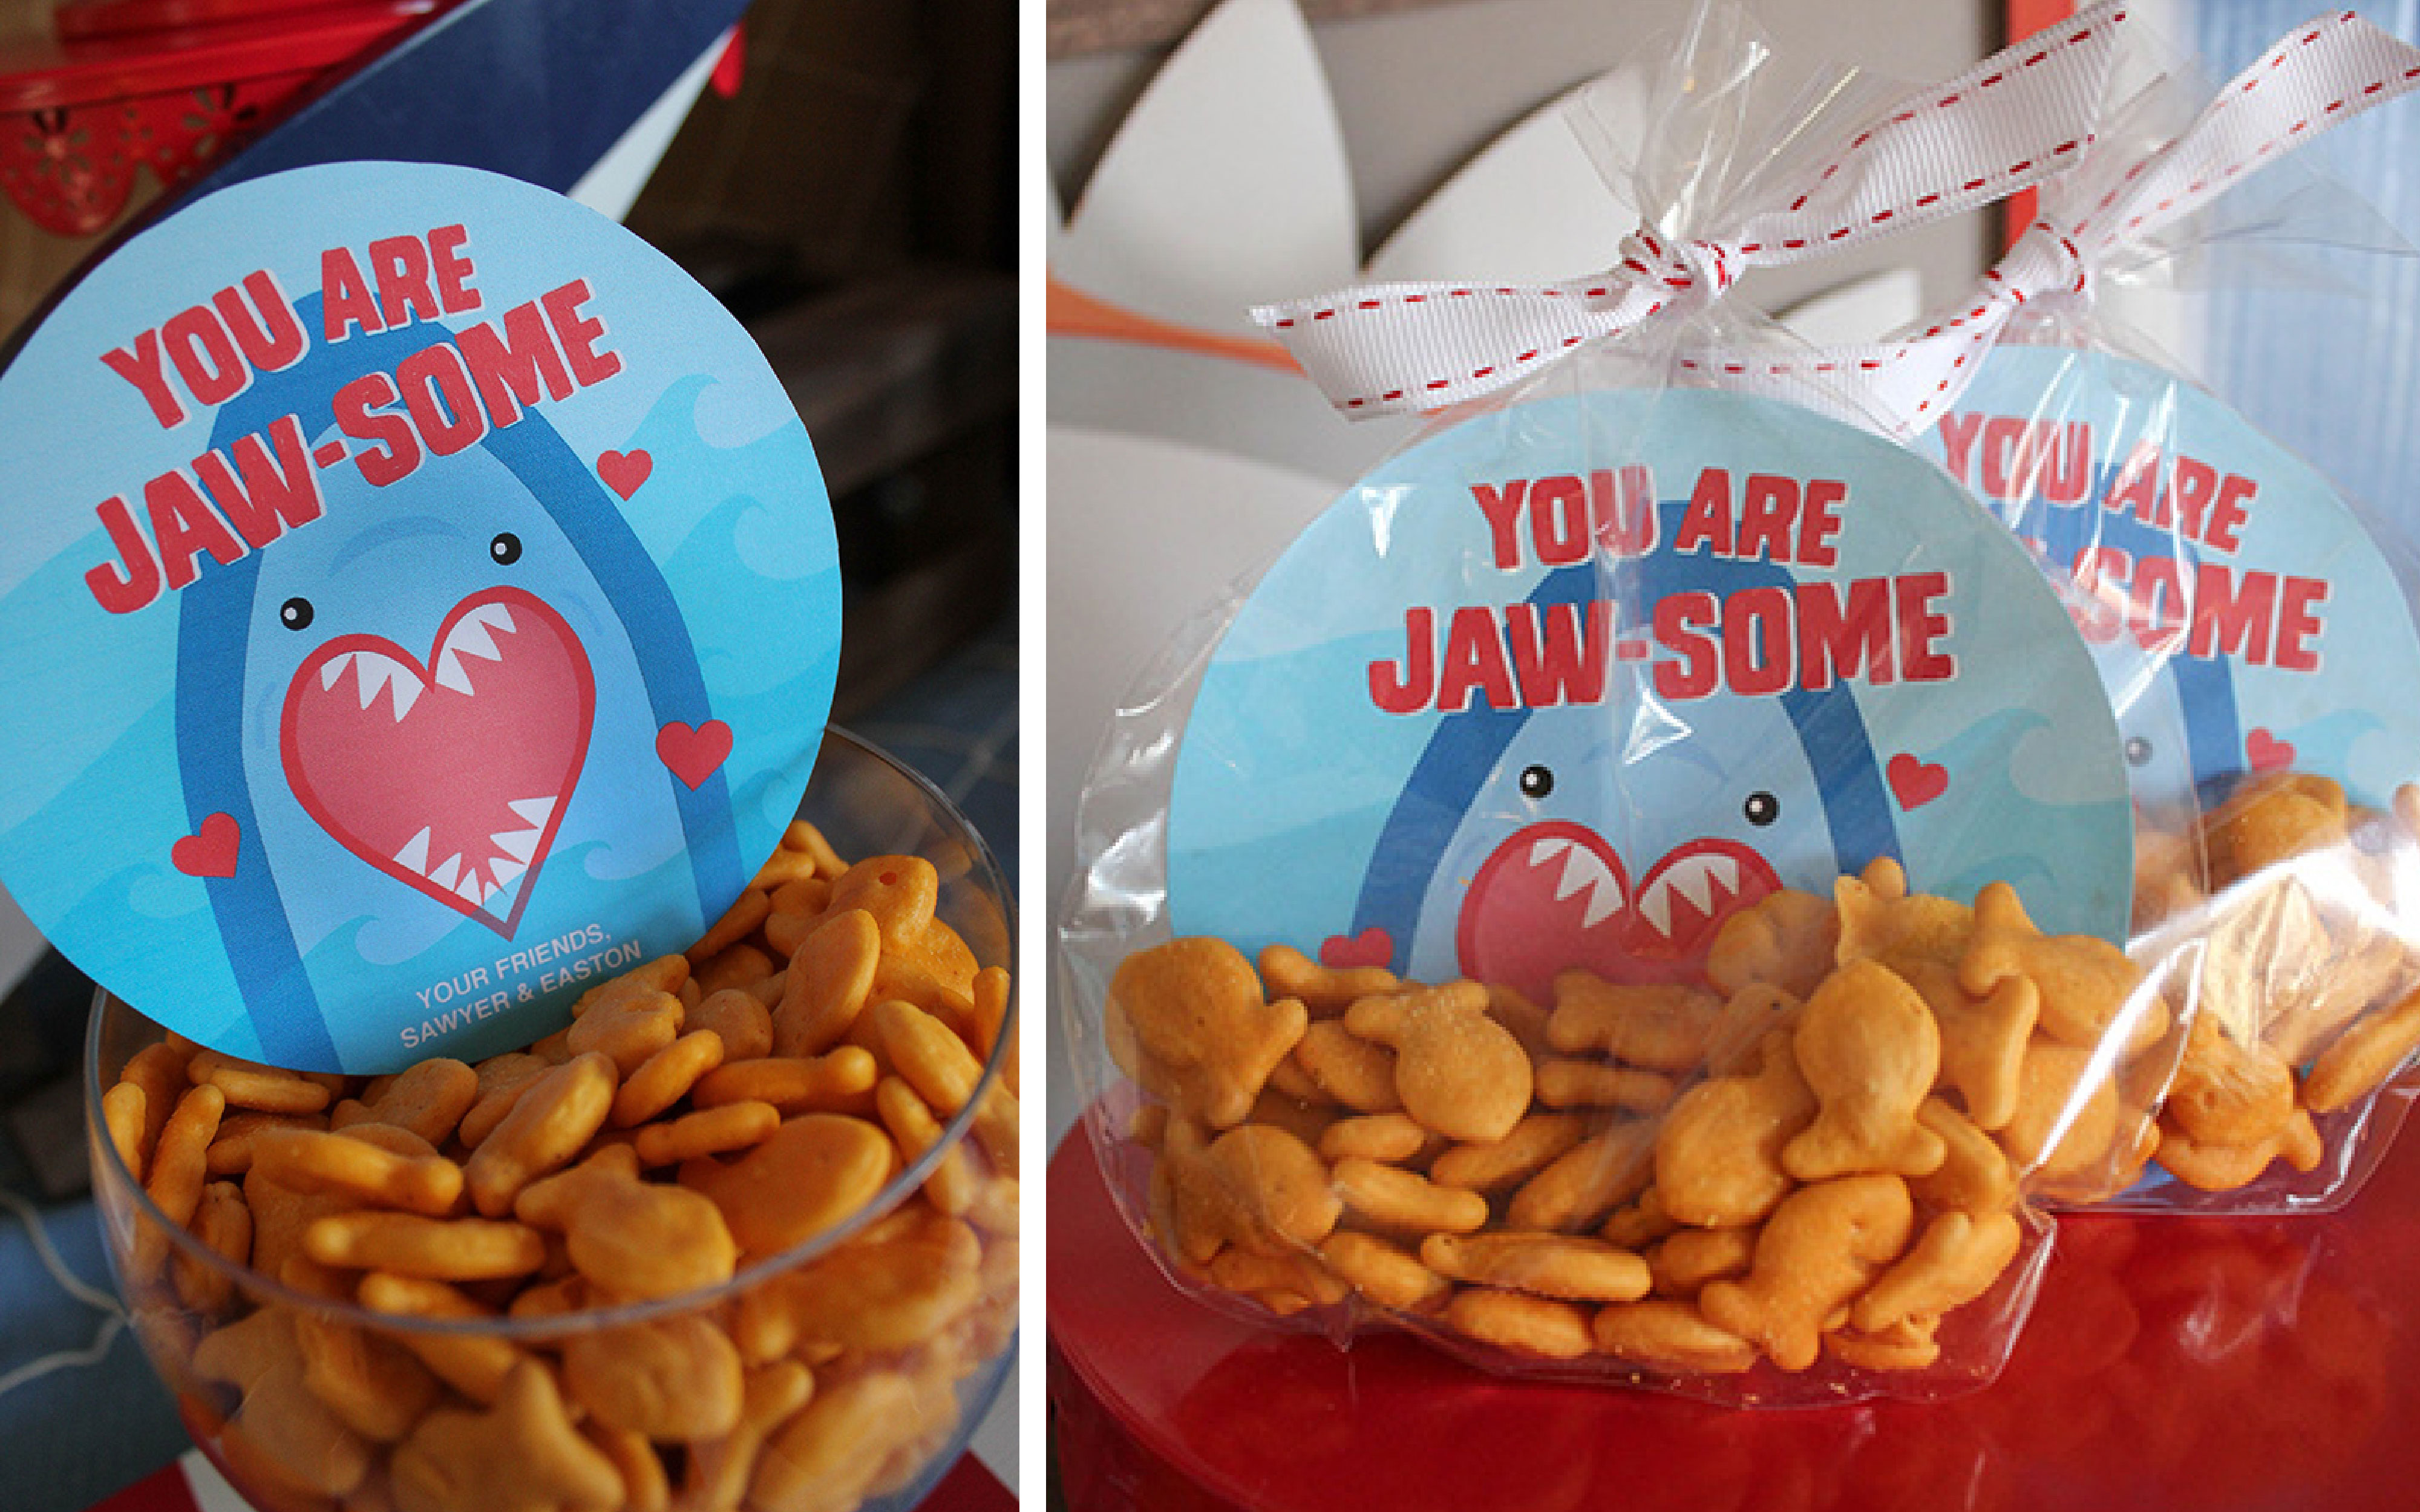 You Are Jaw-some Valentine's Day Party, shark party, Jaw-some, Valentines party, kids valentine's day party, kids valentines party, shark party, valentine's day, oriental trading, partnership, fin-tastic, free printables, party ideas, party inspiration, valentine's day shark party, valentines shark party, Just Add Confetti